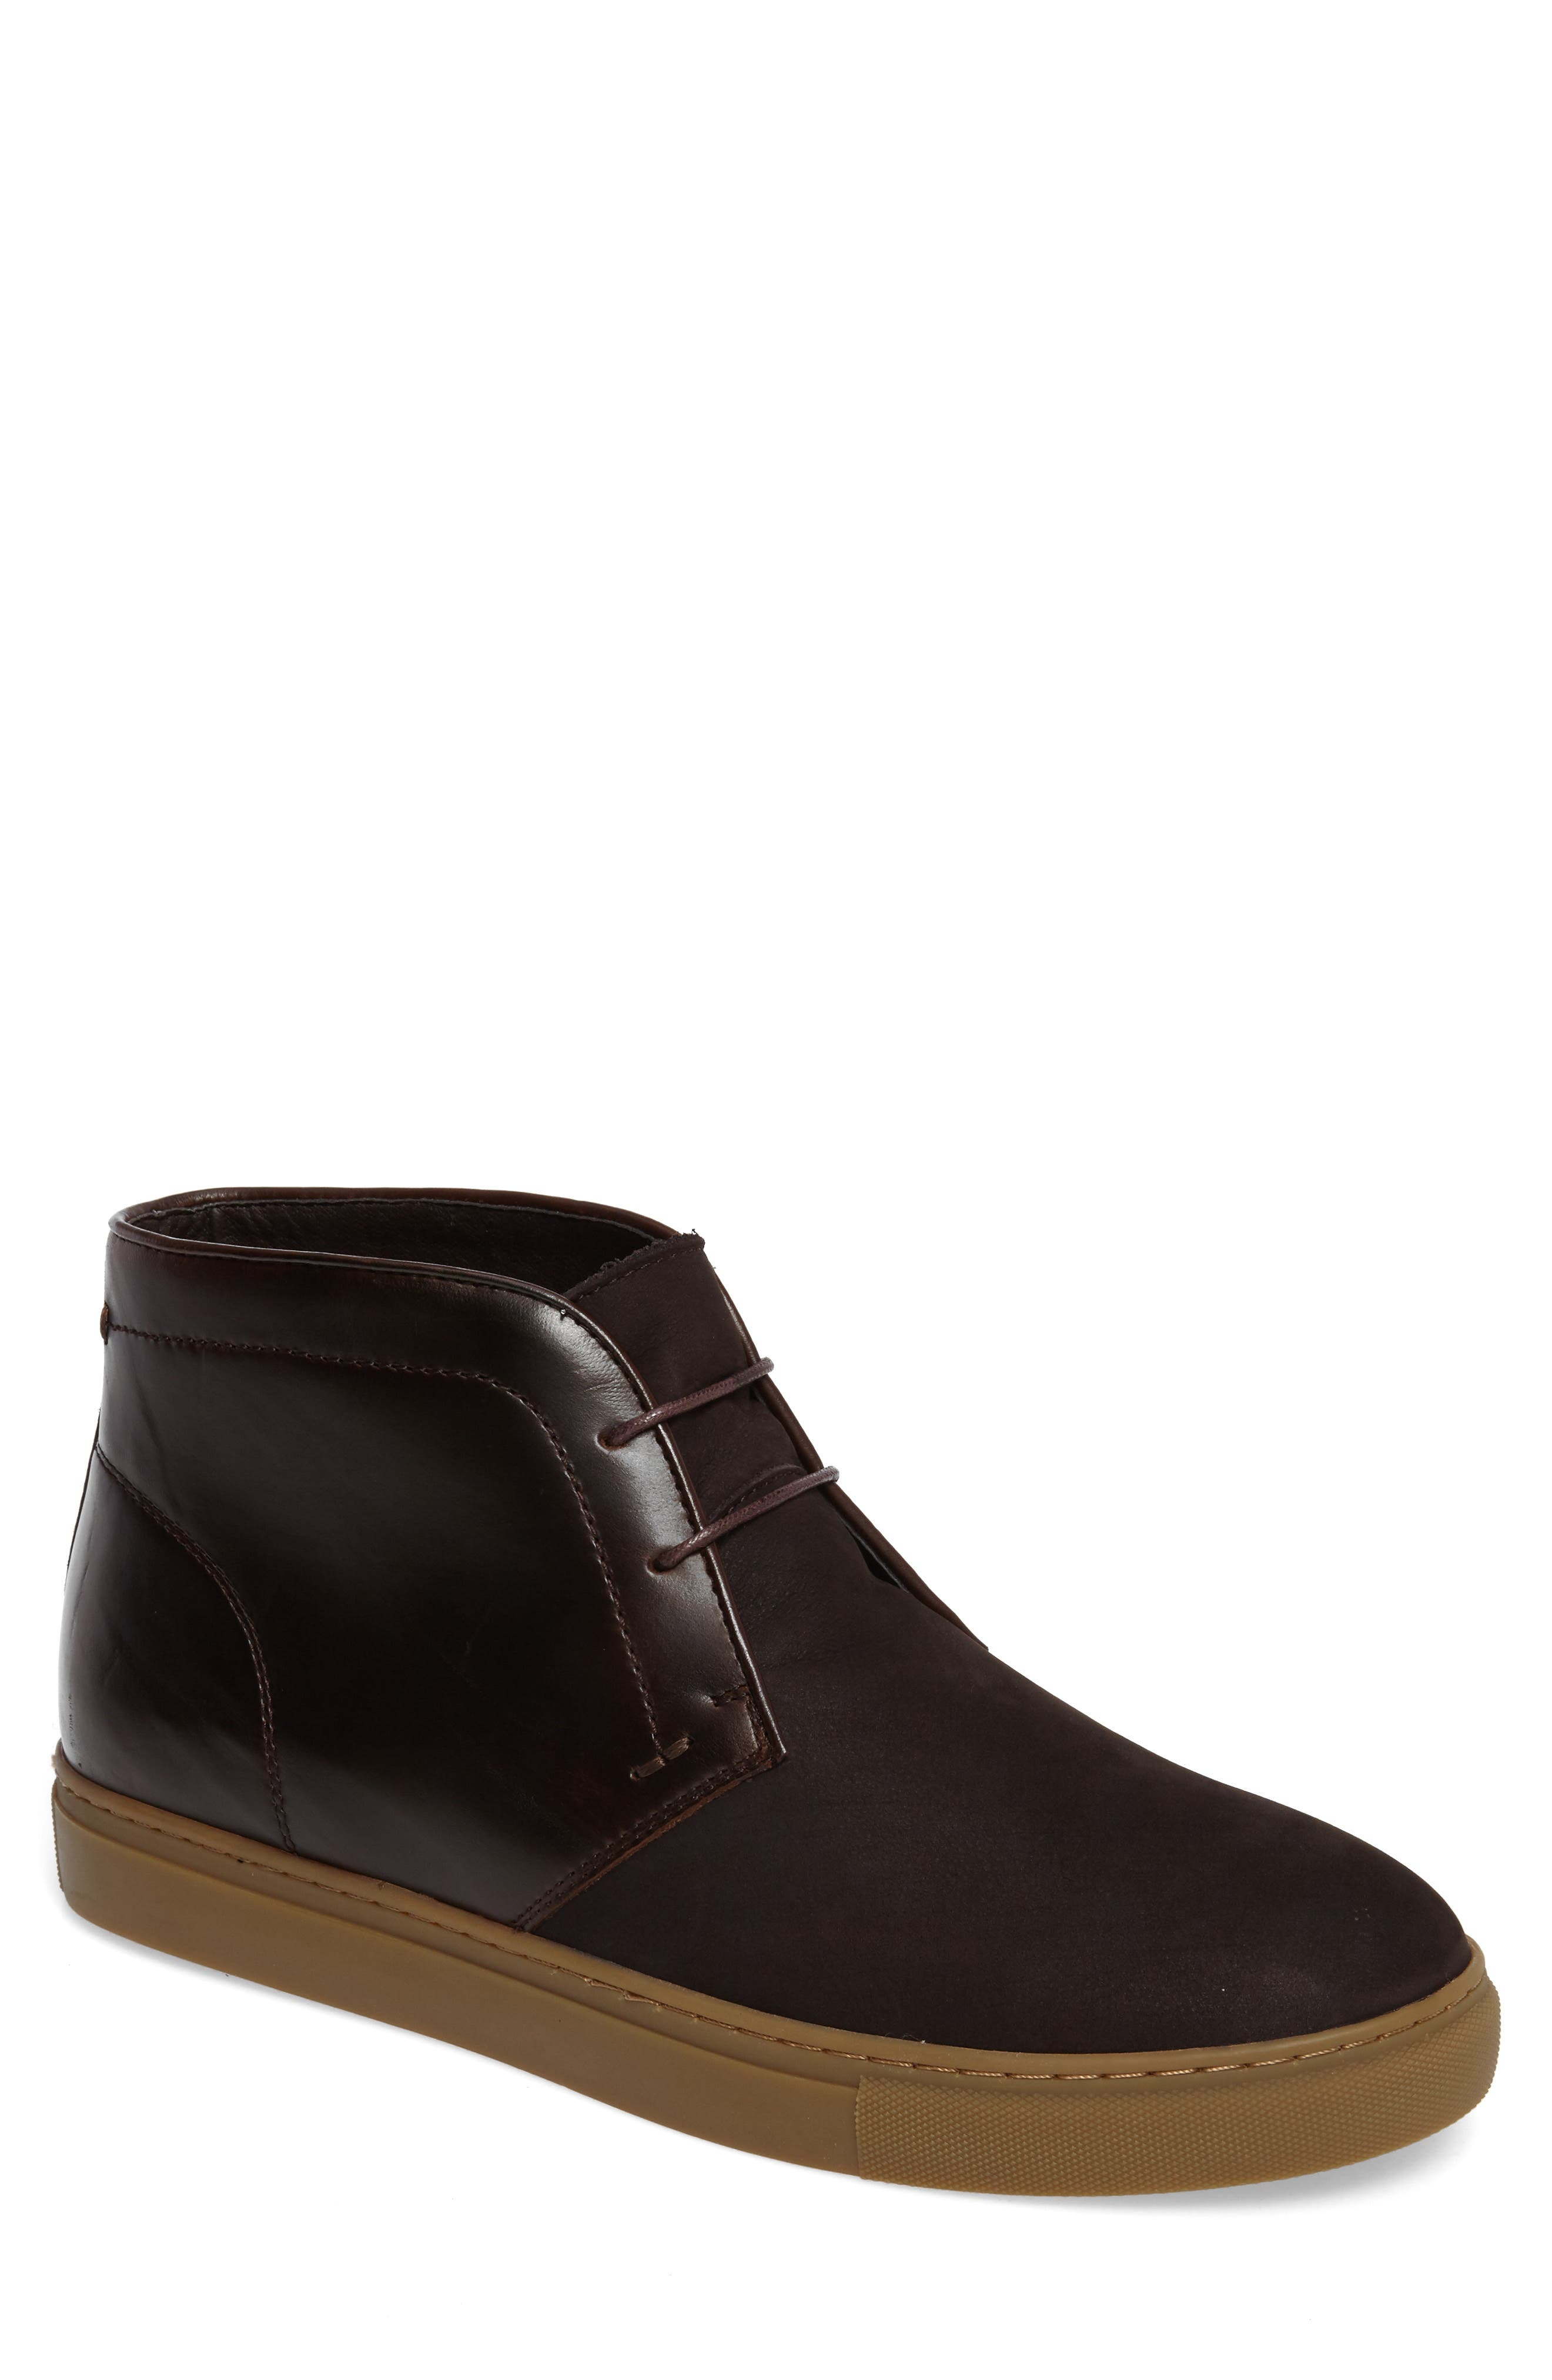 Laxey Mid Sneaker,                         Main,                         color, Brown